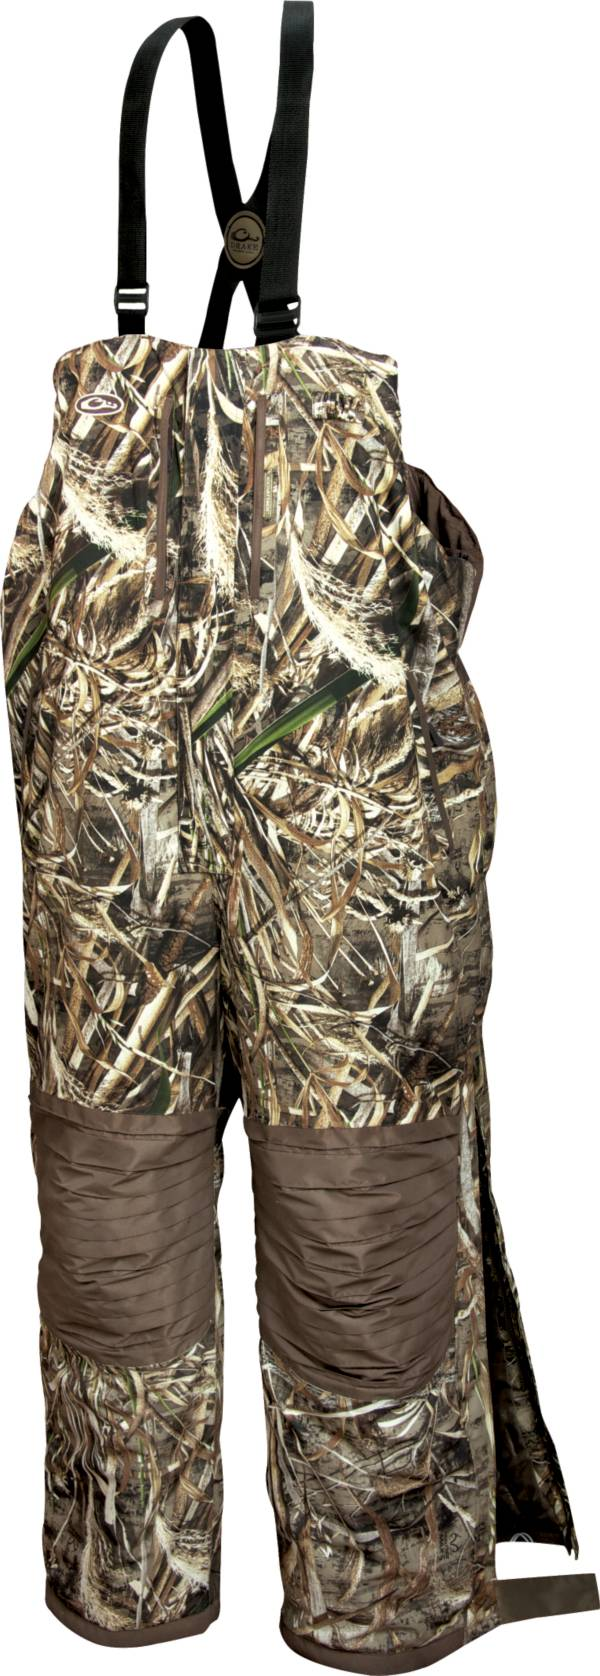 Drake Waterfowl Men's LST 2.0 Insulated Bibs product image